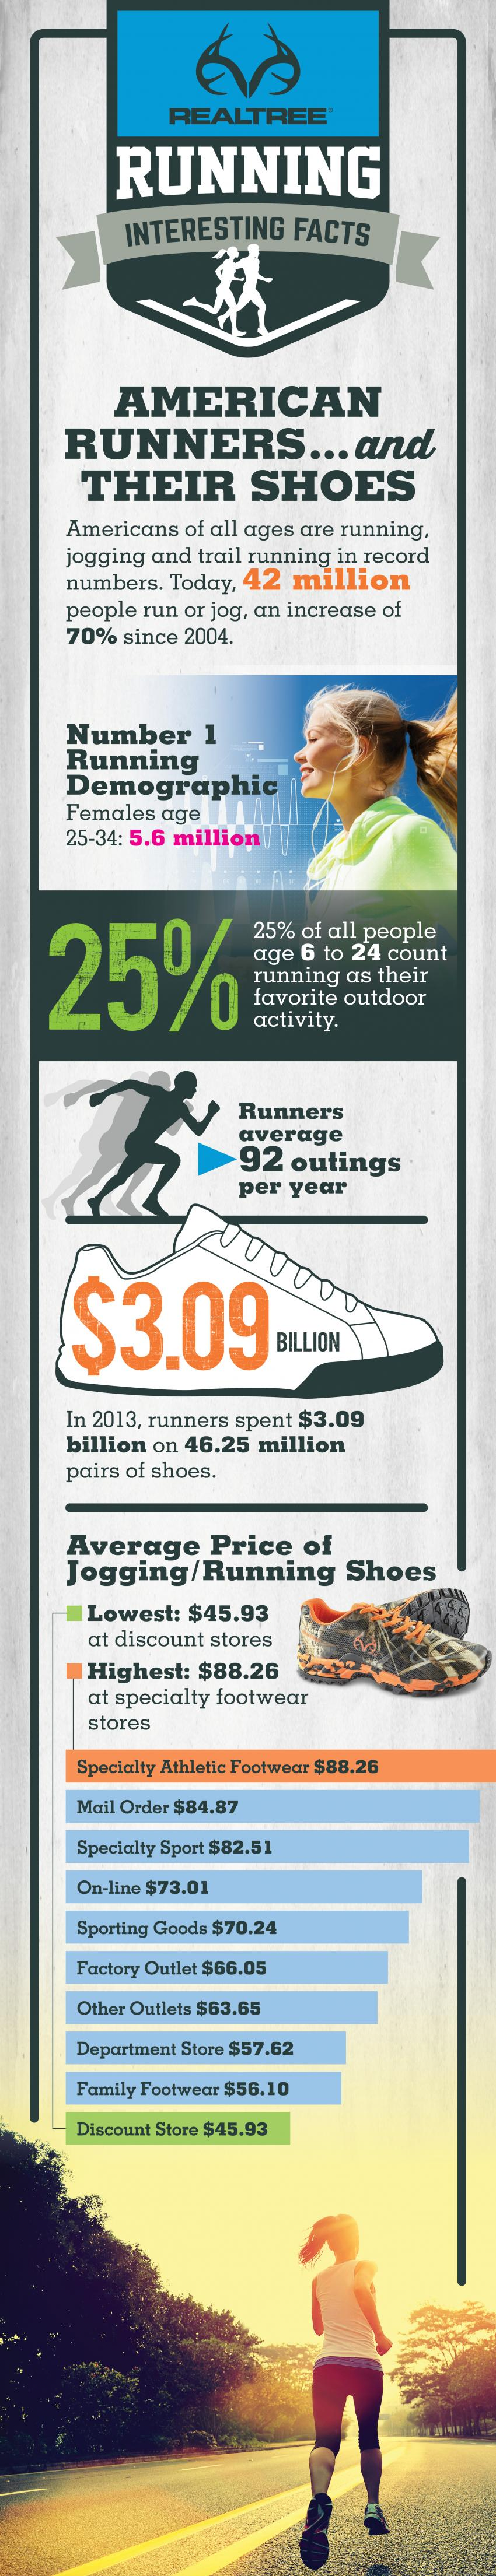 Running Shoes Market Snapshot 2016